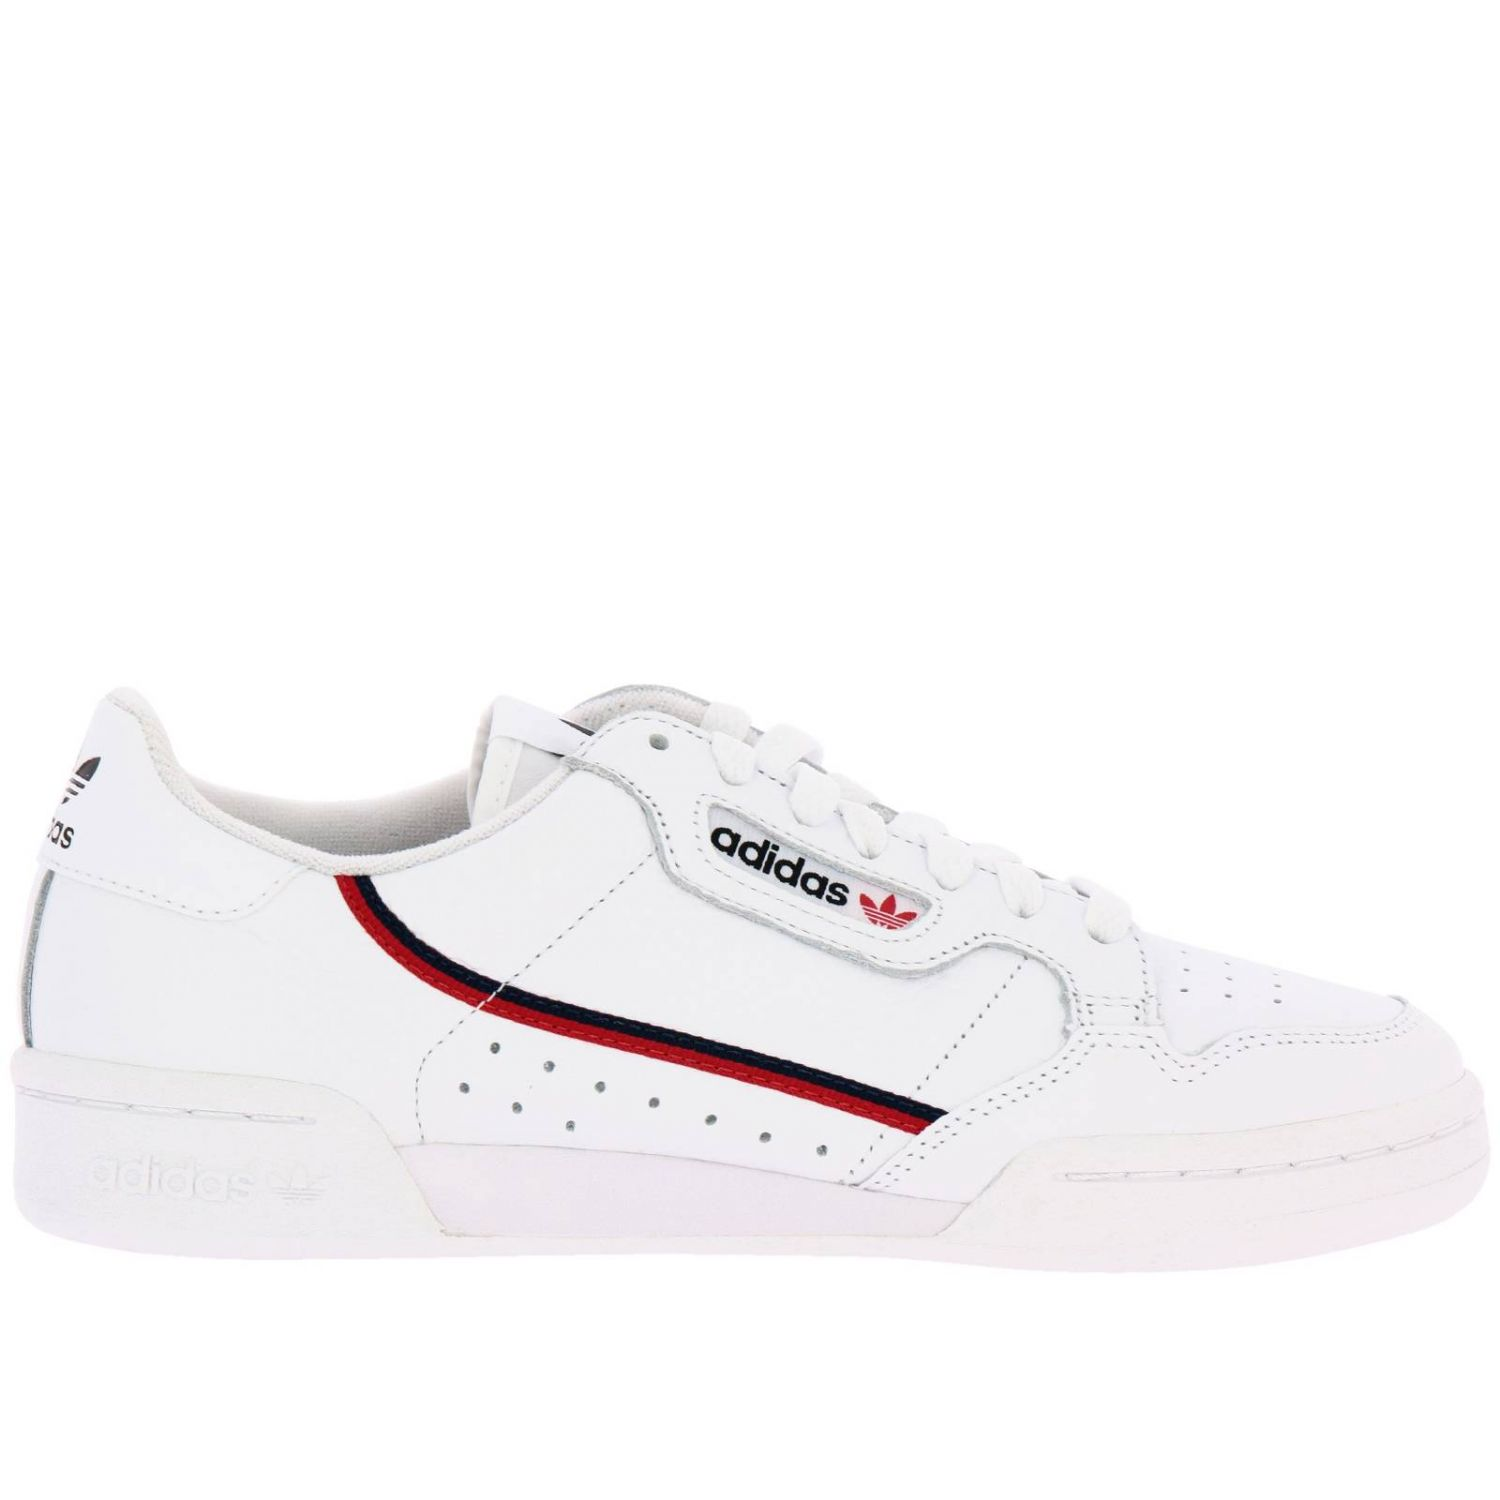 Sneakers Adidas Originals: Adidas Originals 80 Sneakers in leather with stripes white 1